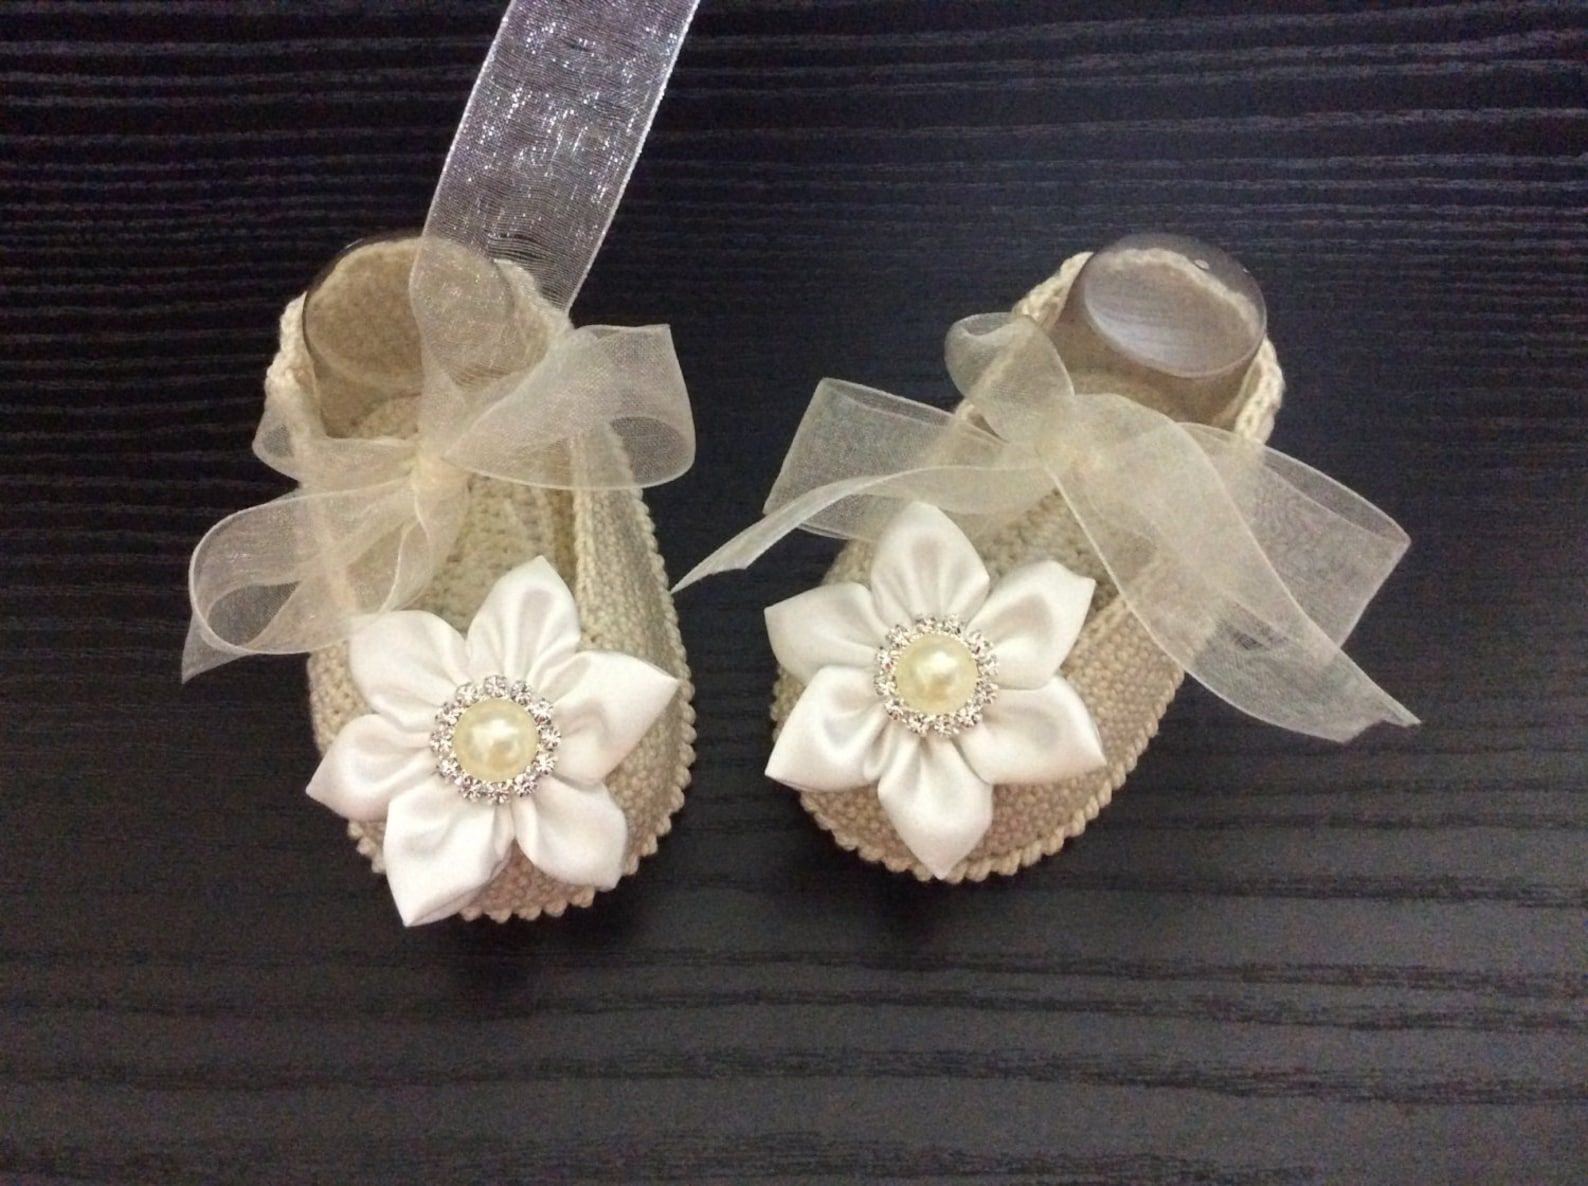 new baby girl booties, ballet slippers for baby girl and headband